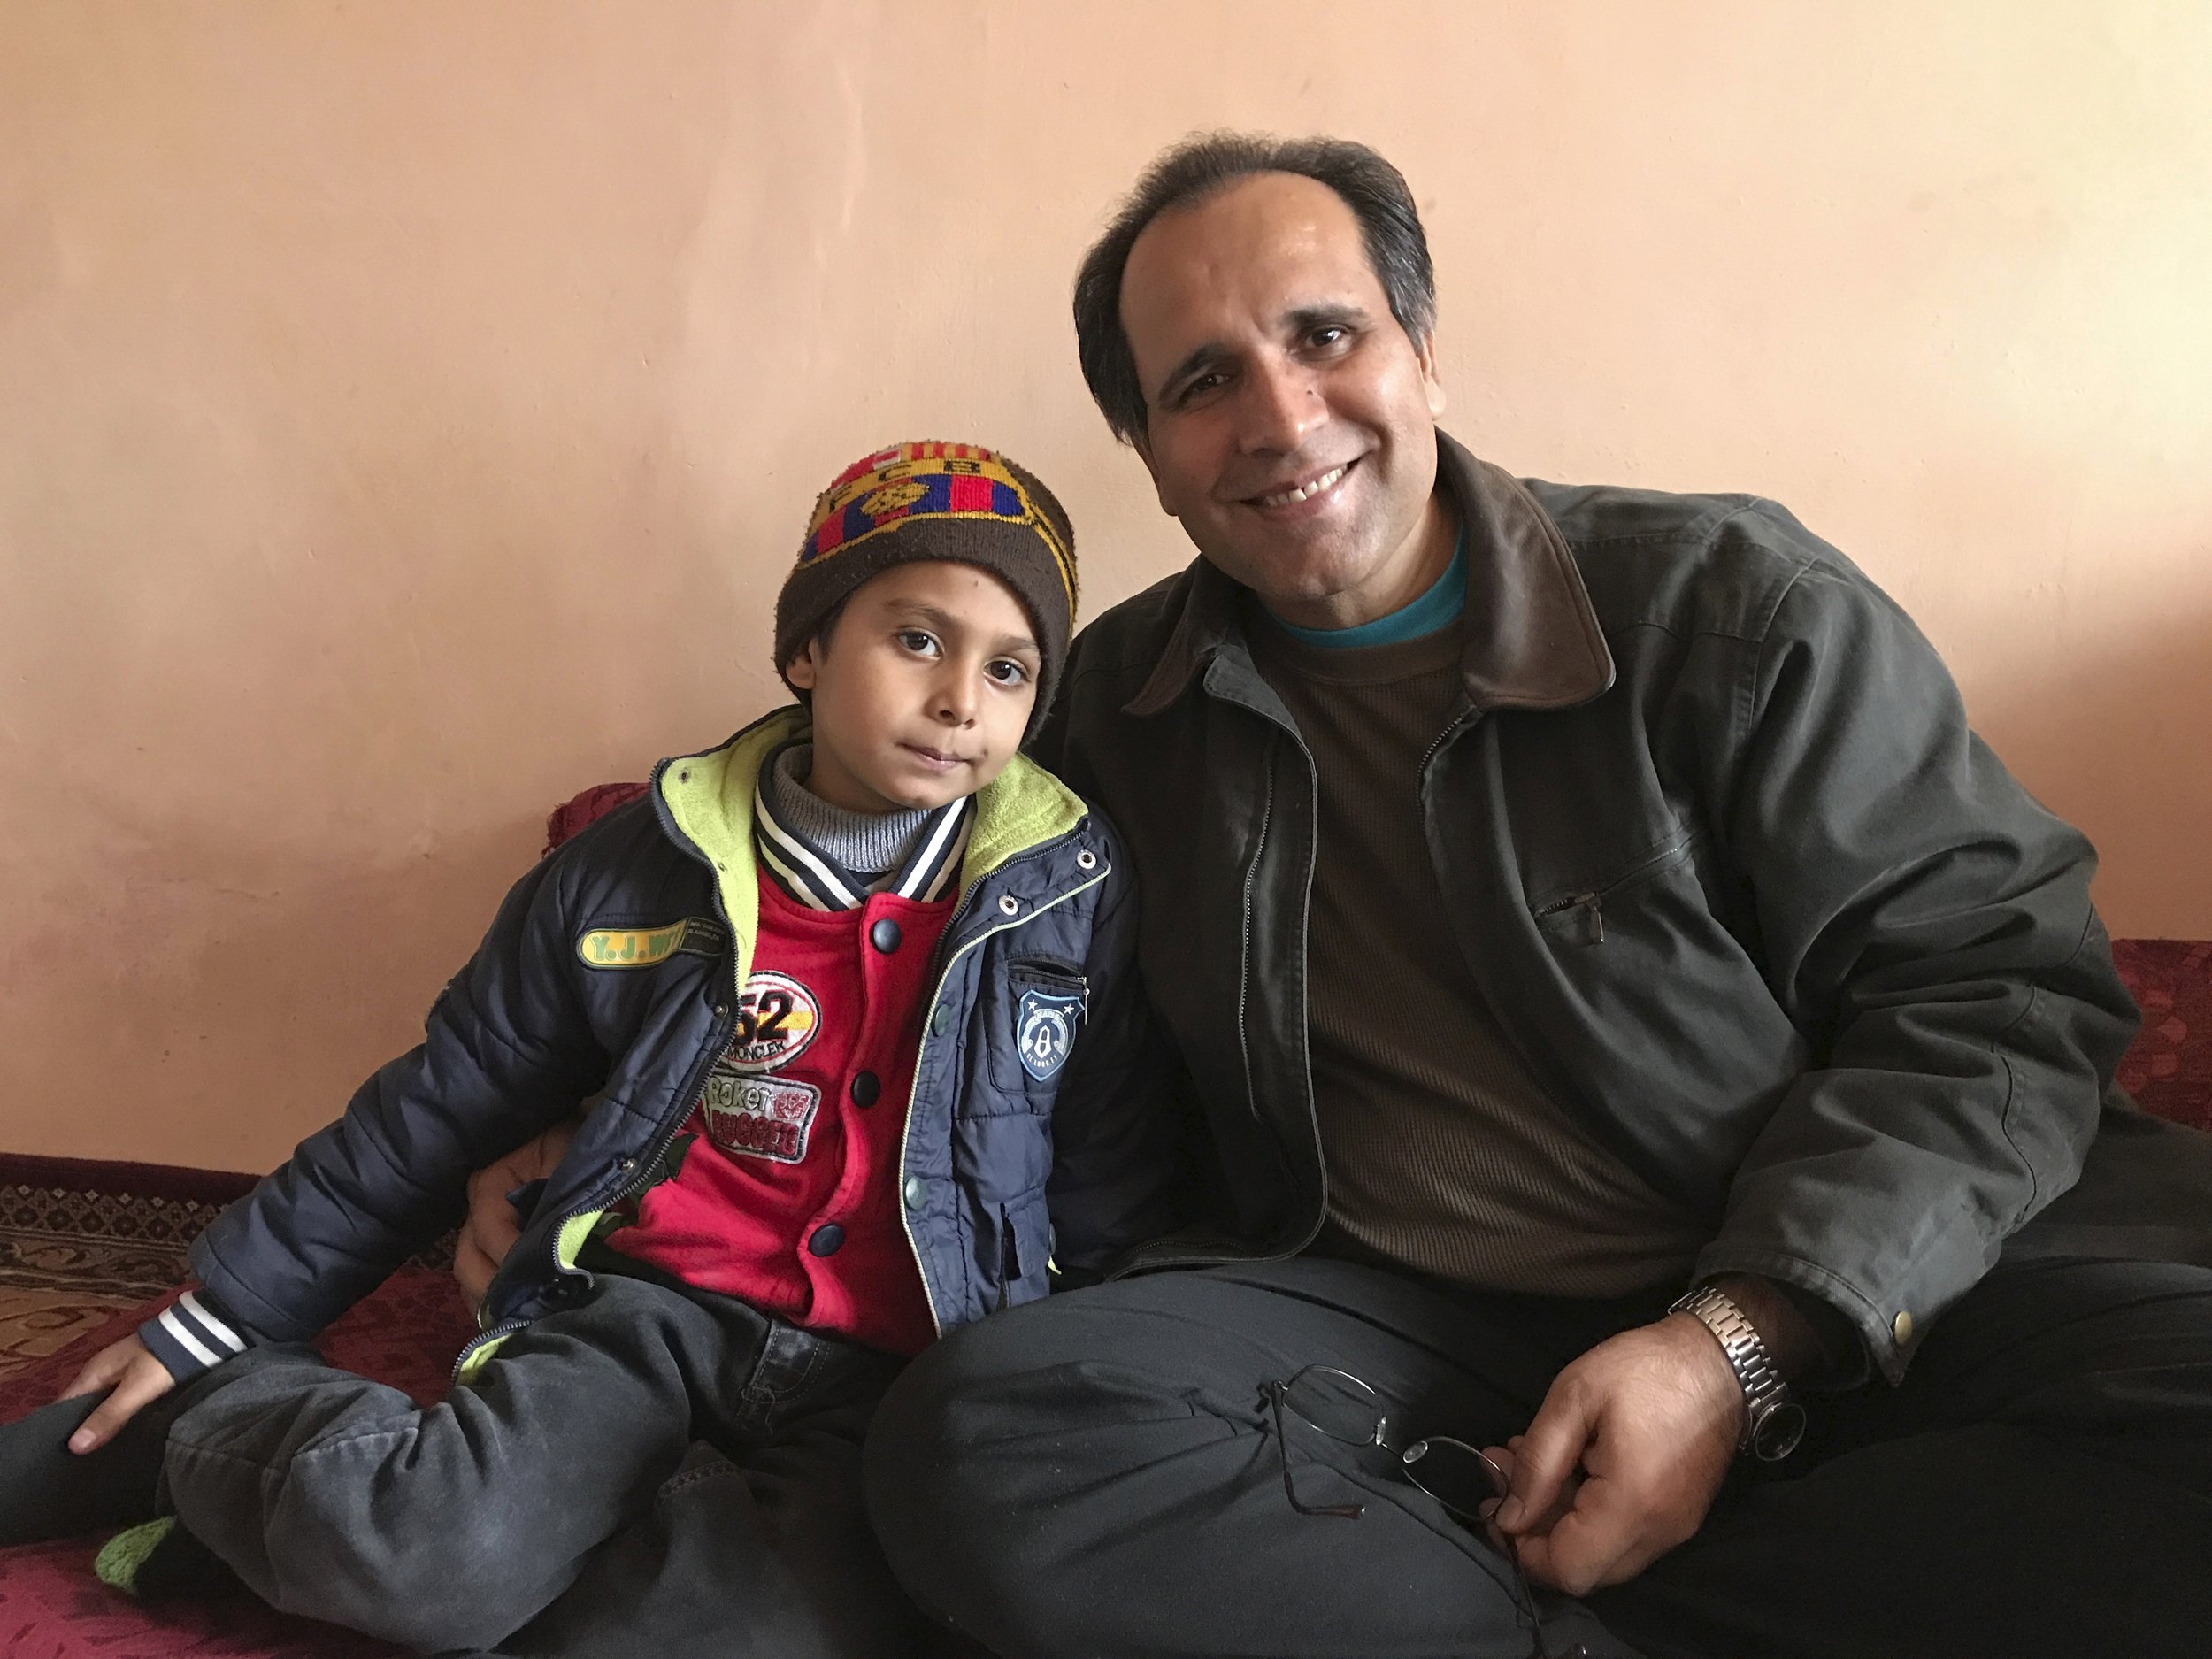 A Florida couple's agonizing wait to adopt an Afghan boy takes on new urgency